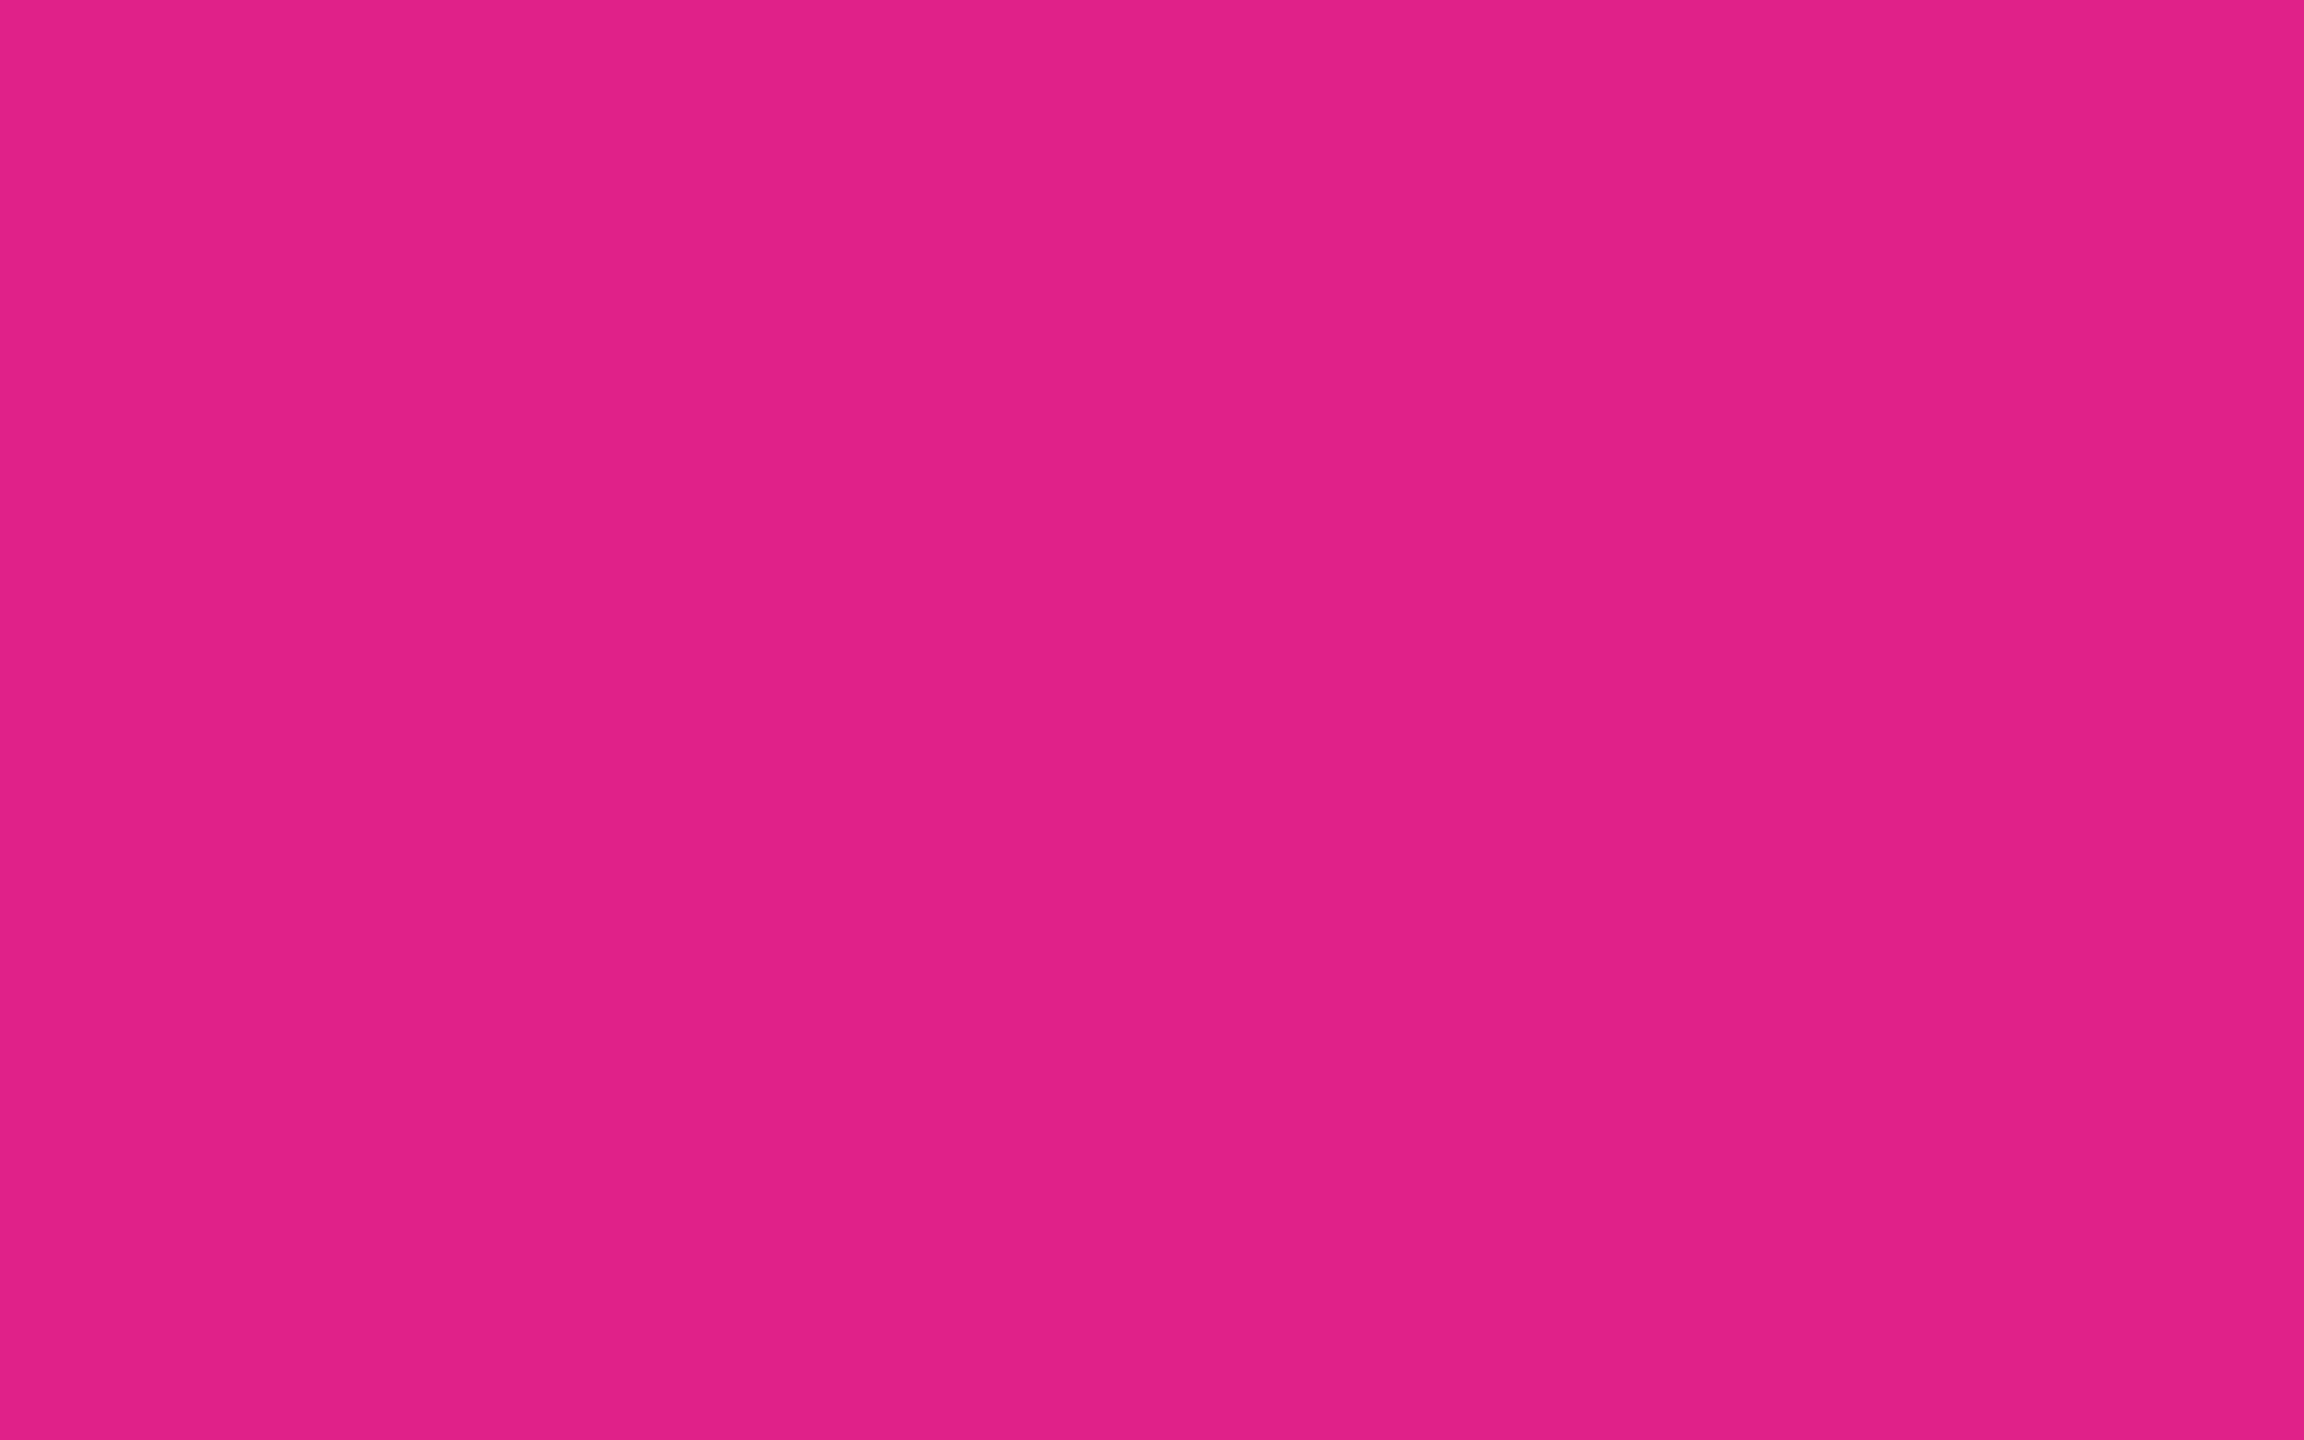 2304x1440 Barbie Pink Solid Color Background